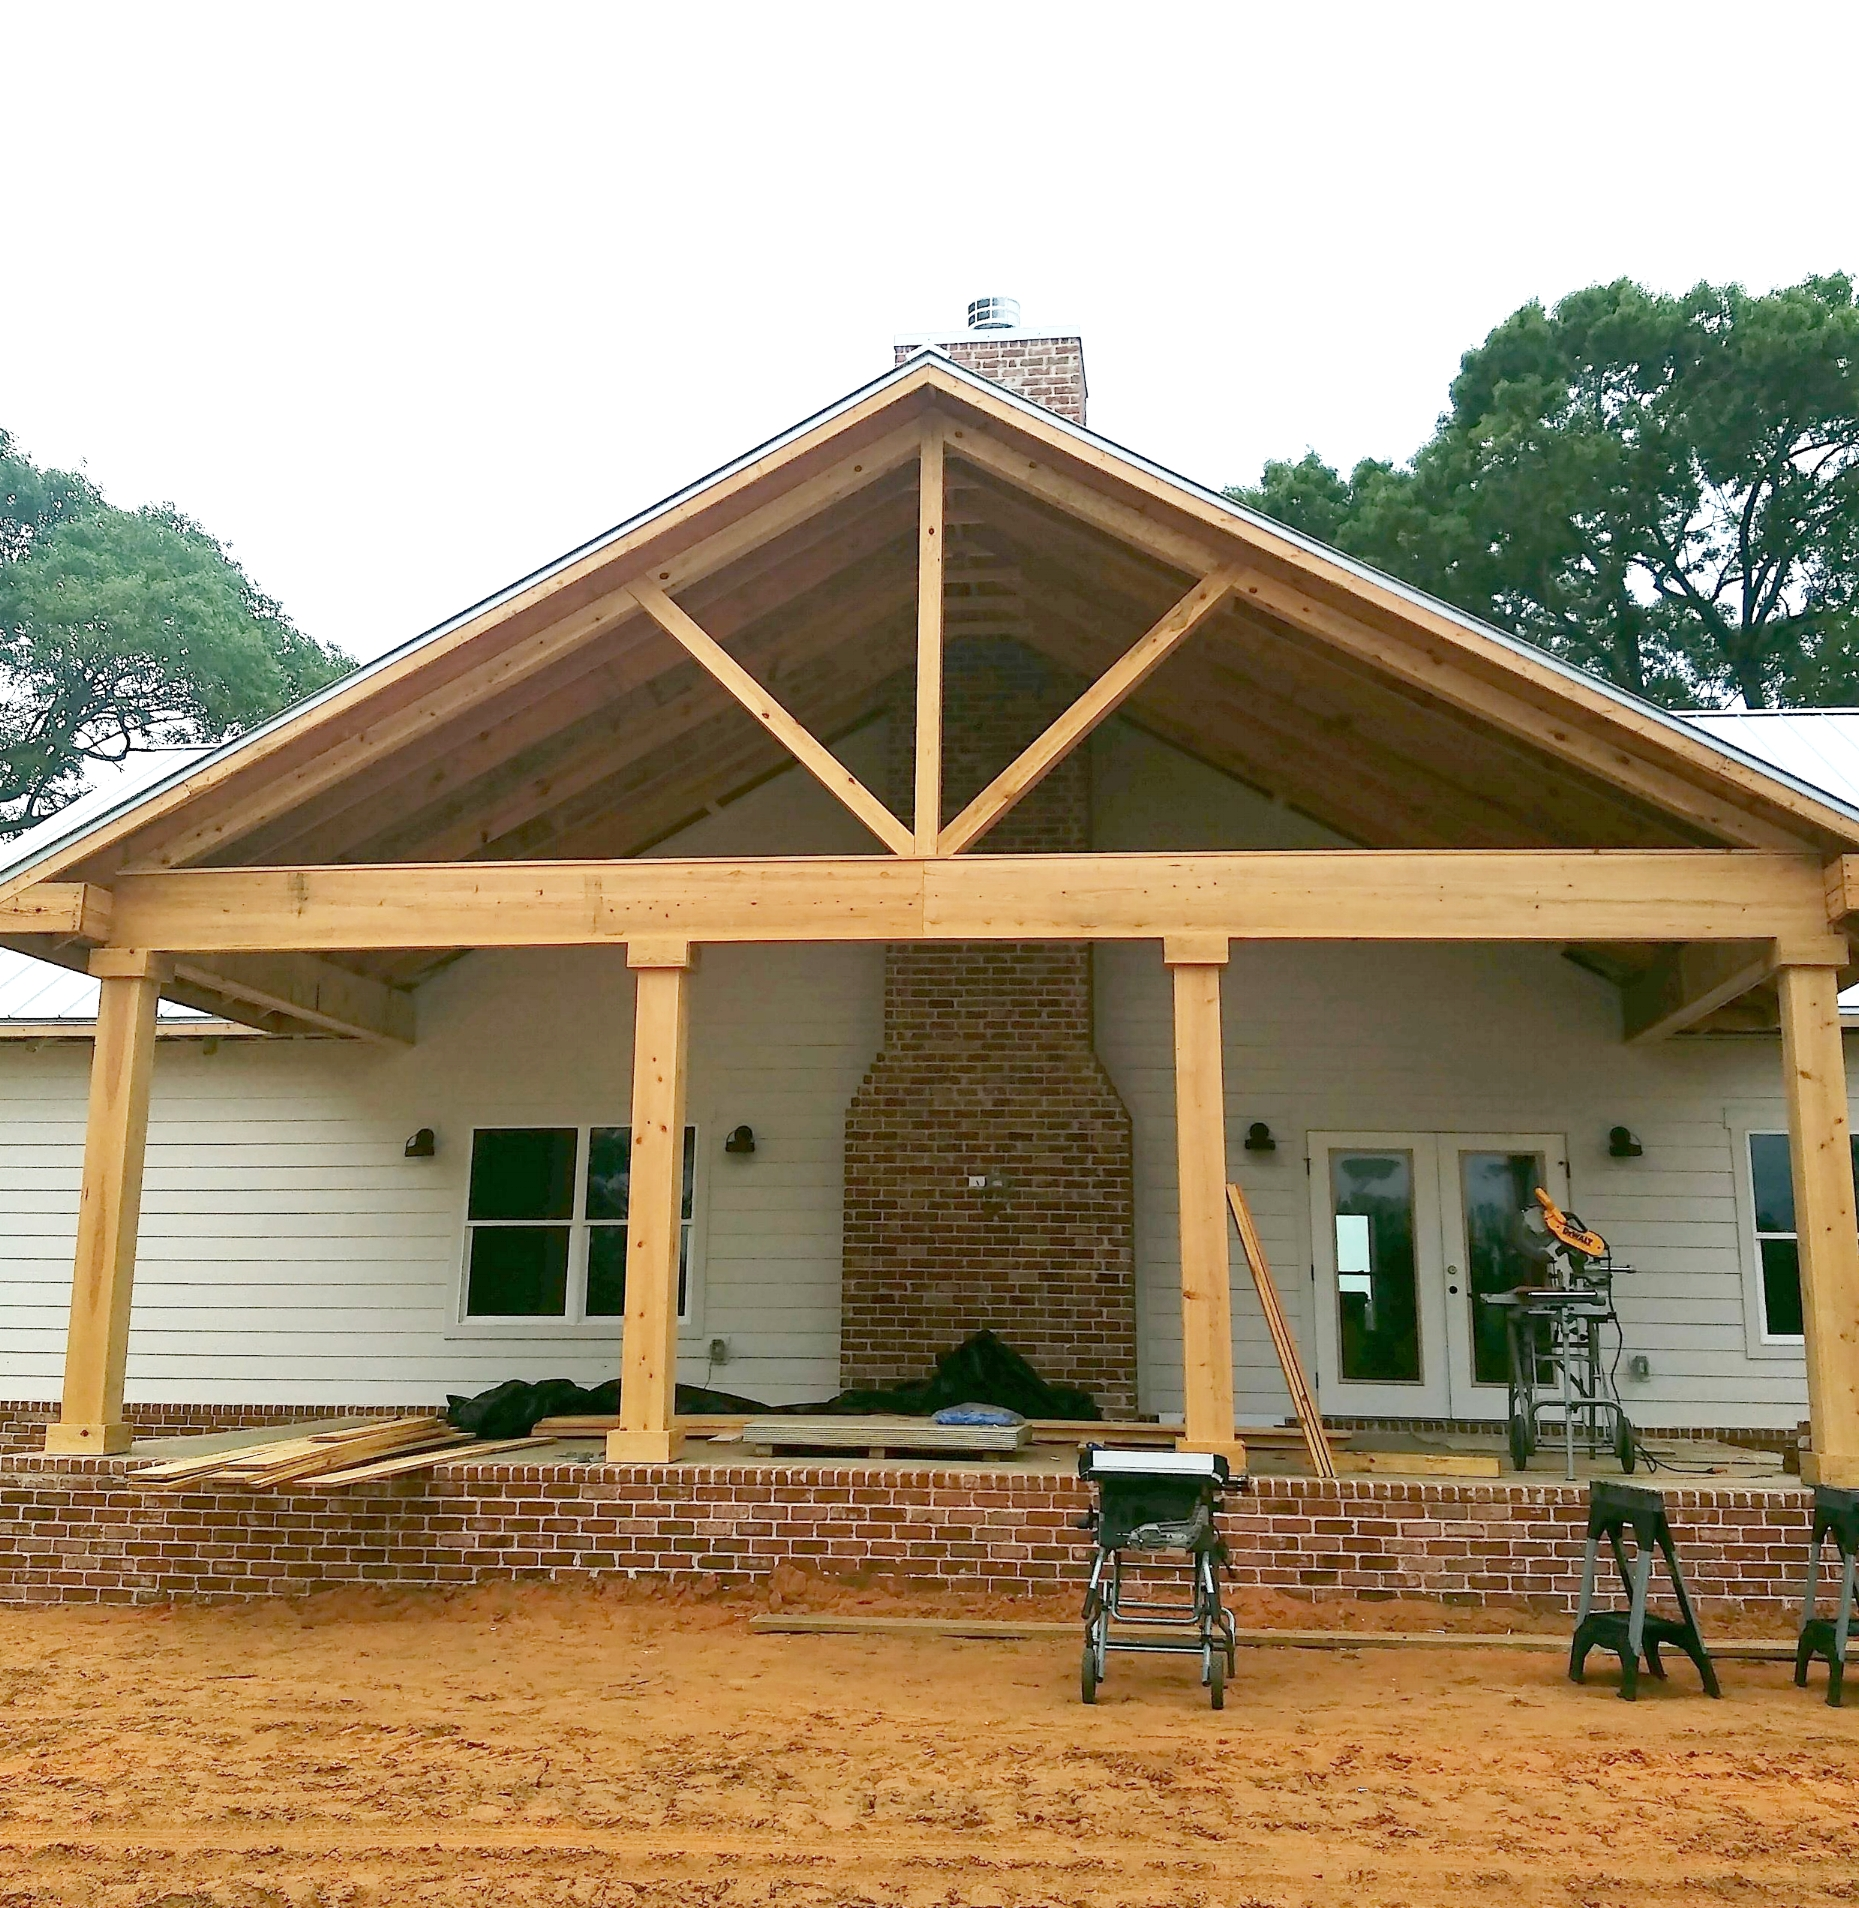 Cypress beams used on front porch